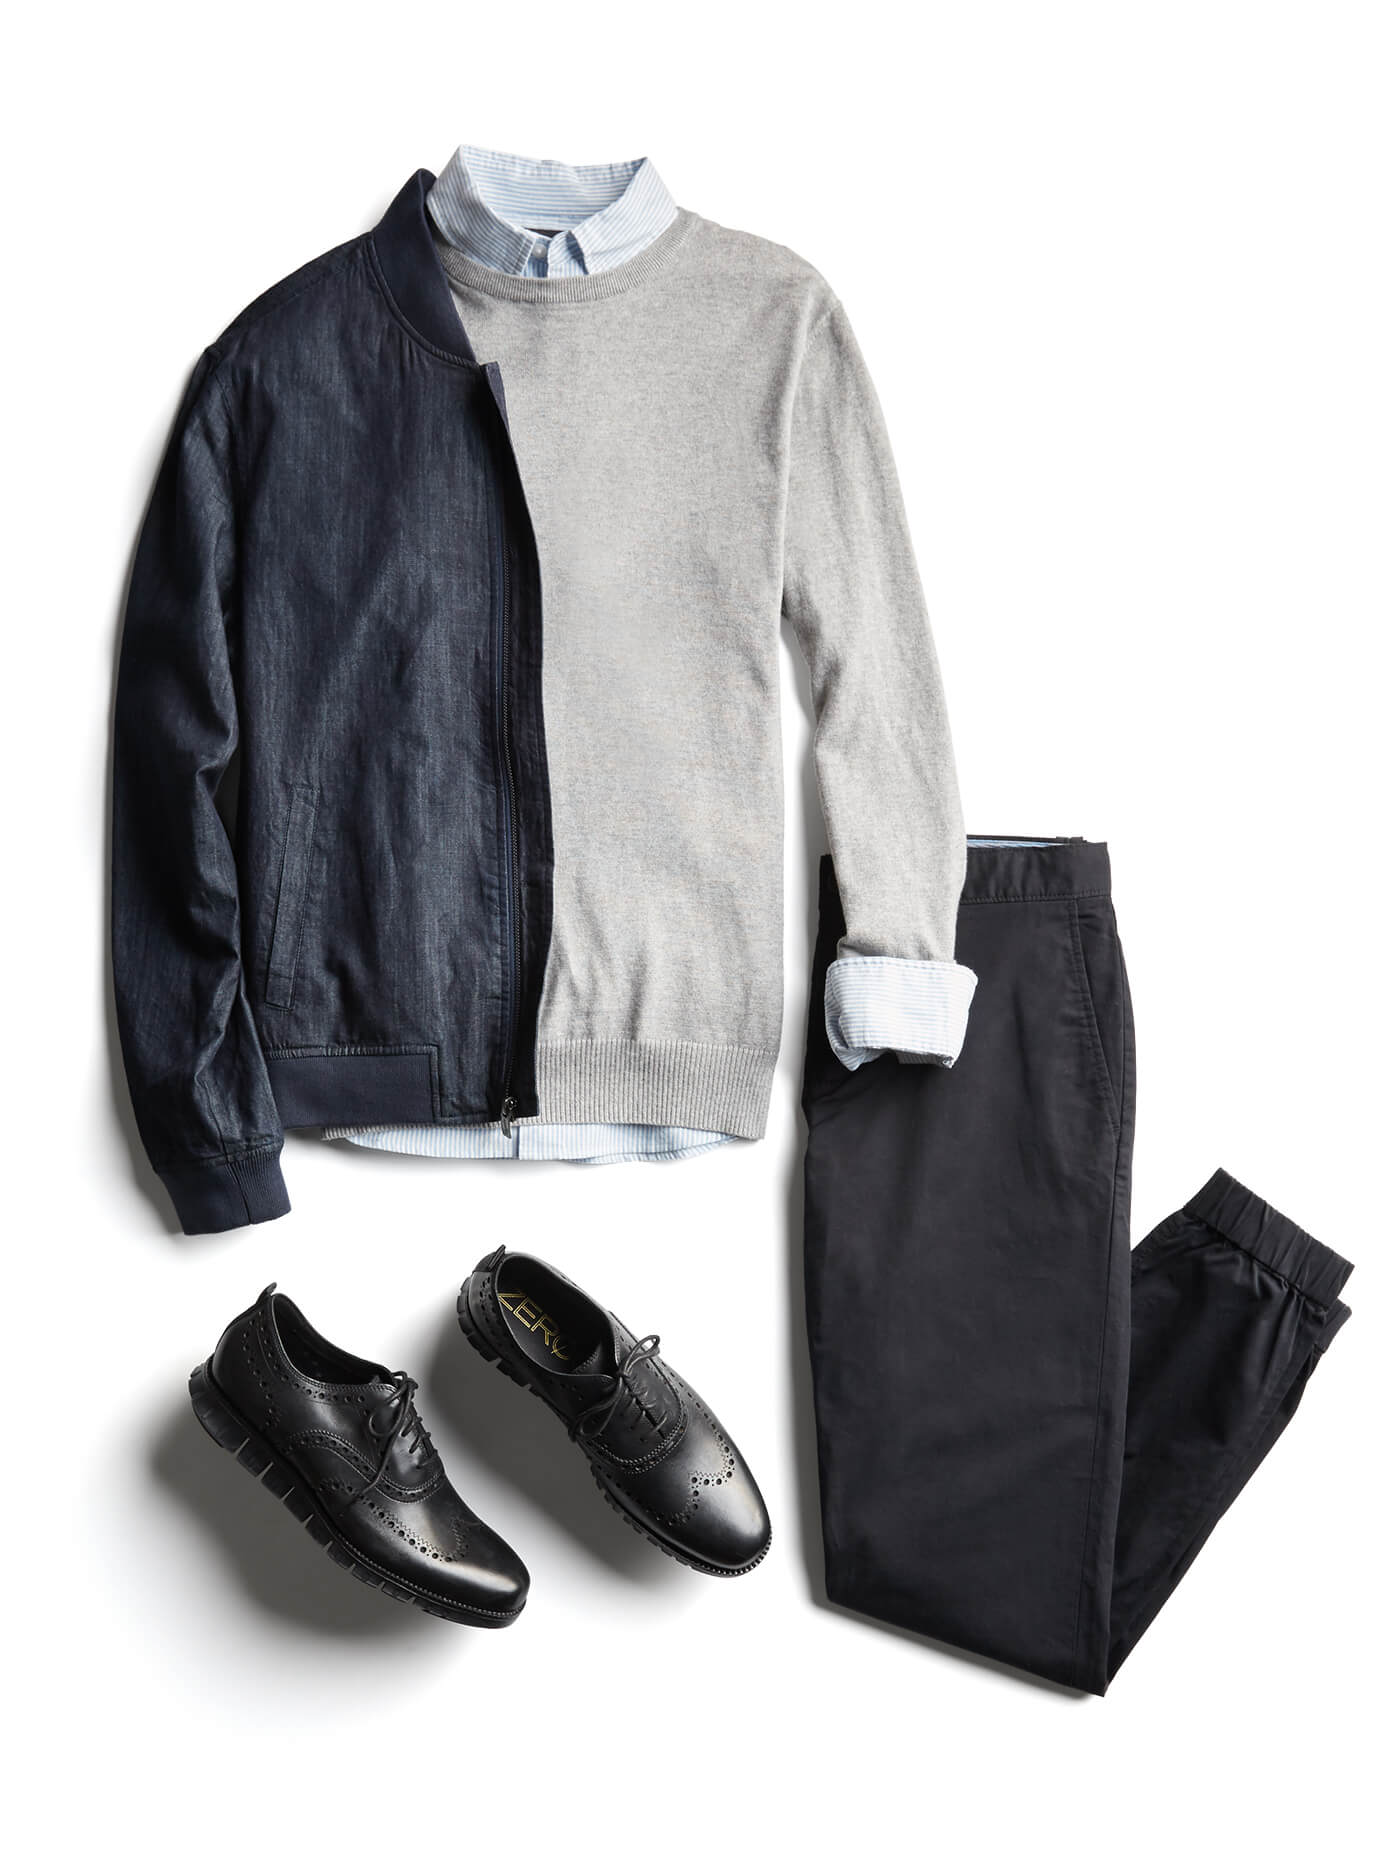 How to Wear Navy and Black Together